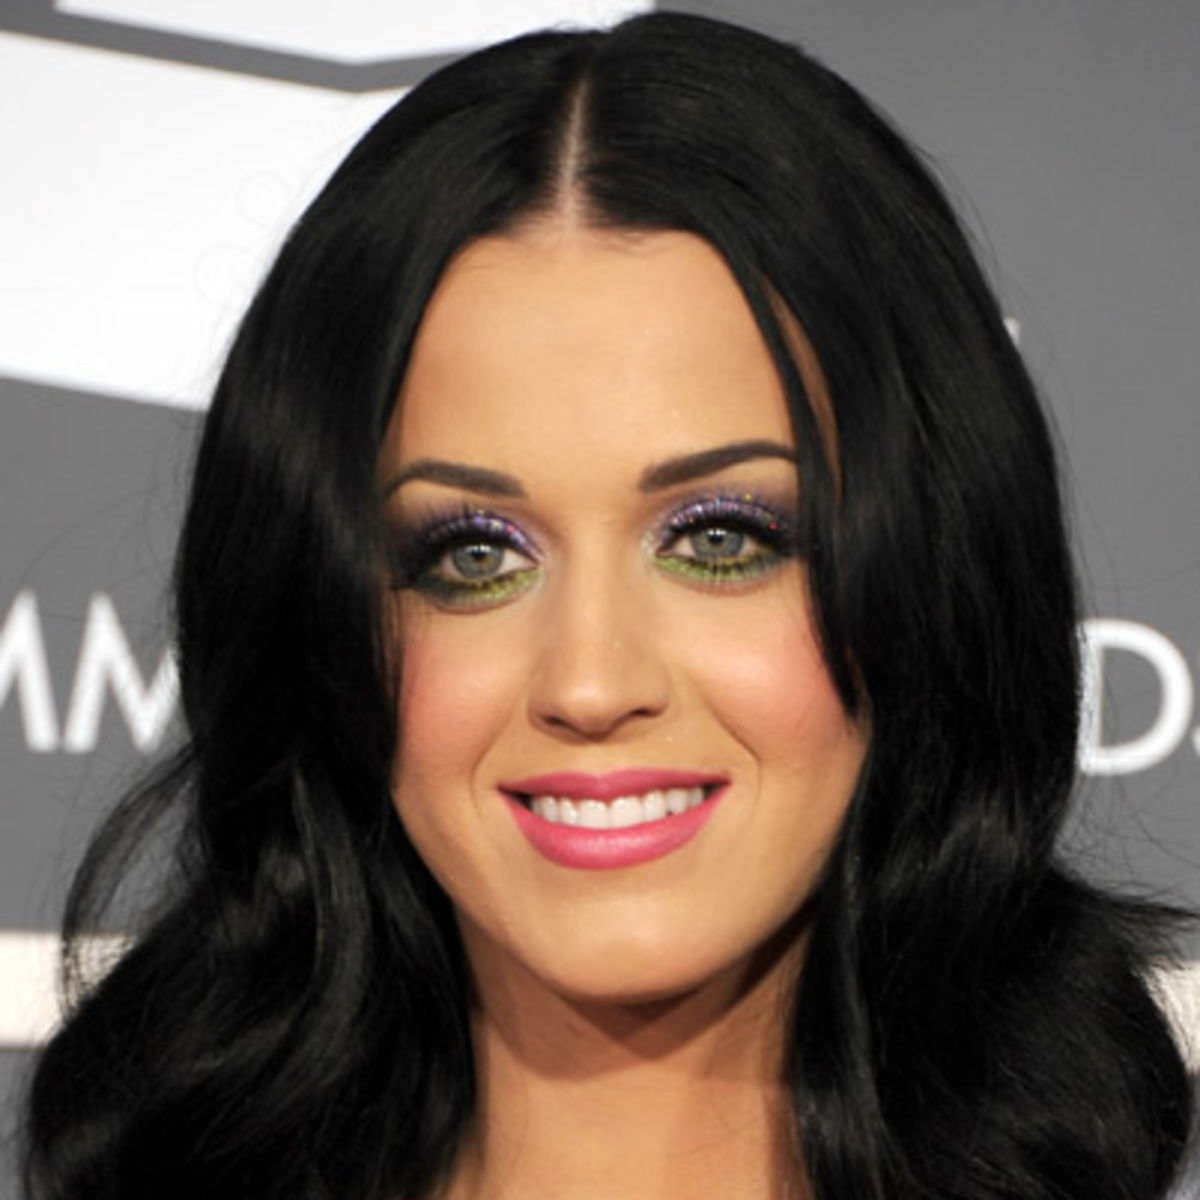 Katy Perry Singer